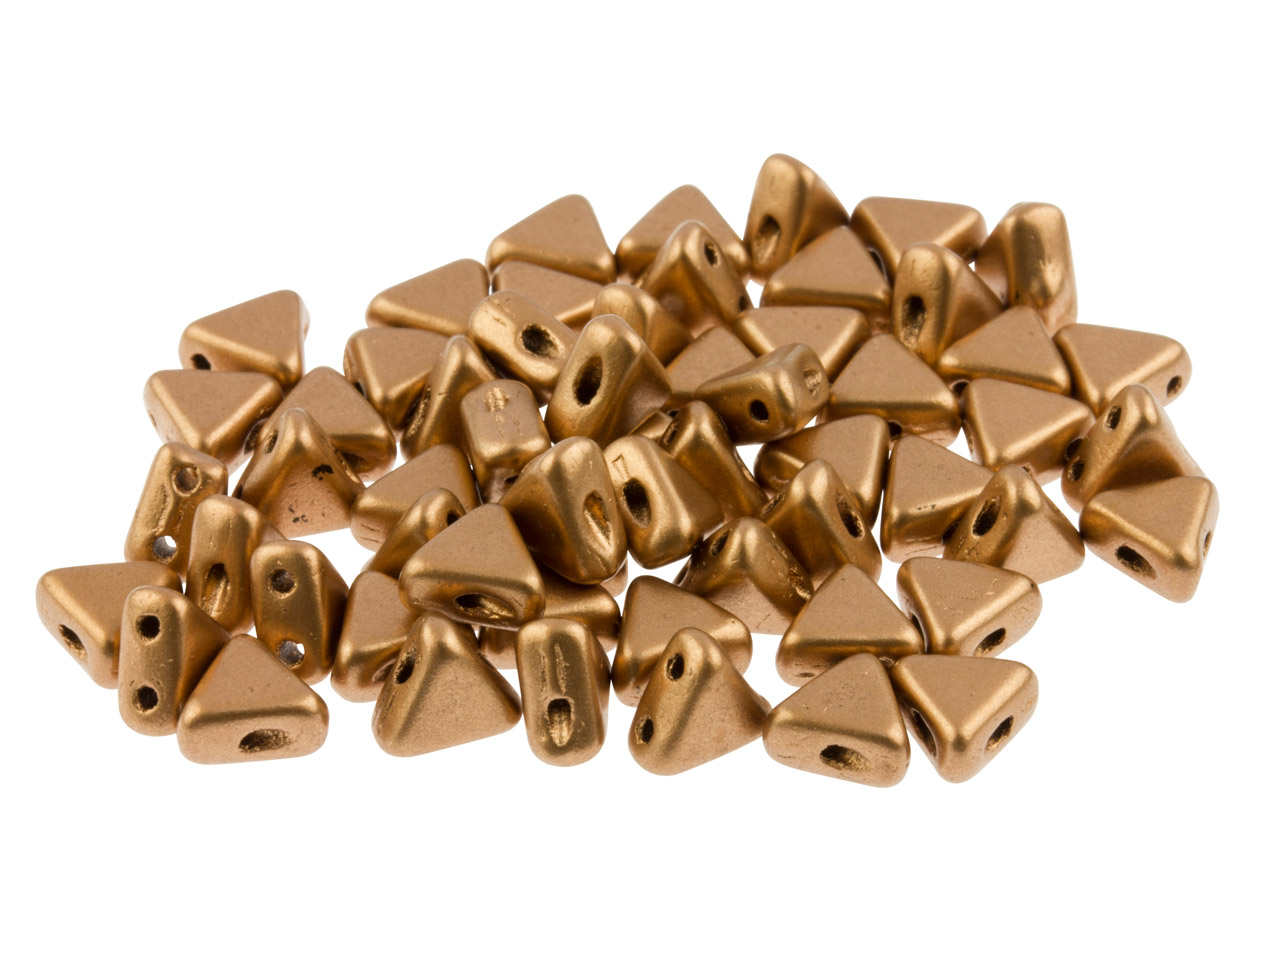 Kheops Puca 6mm Czech Beads, Copper Gold Matte, 9g Tube, Two-holed      Beads